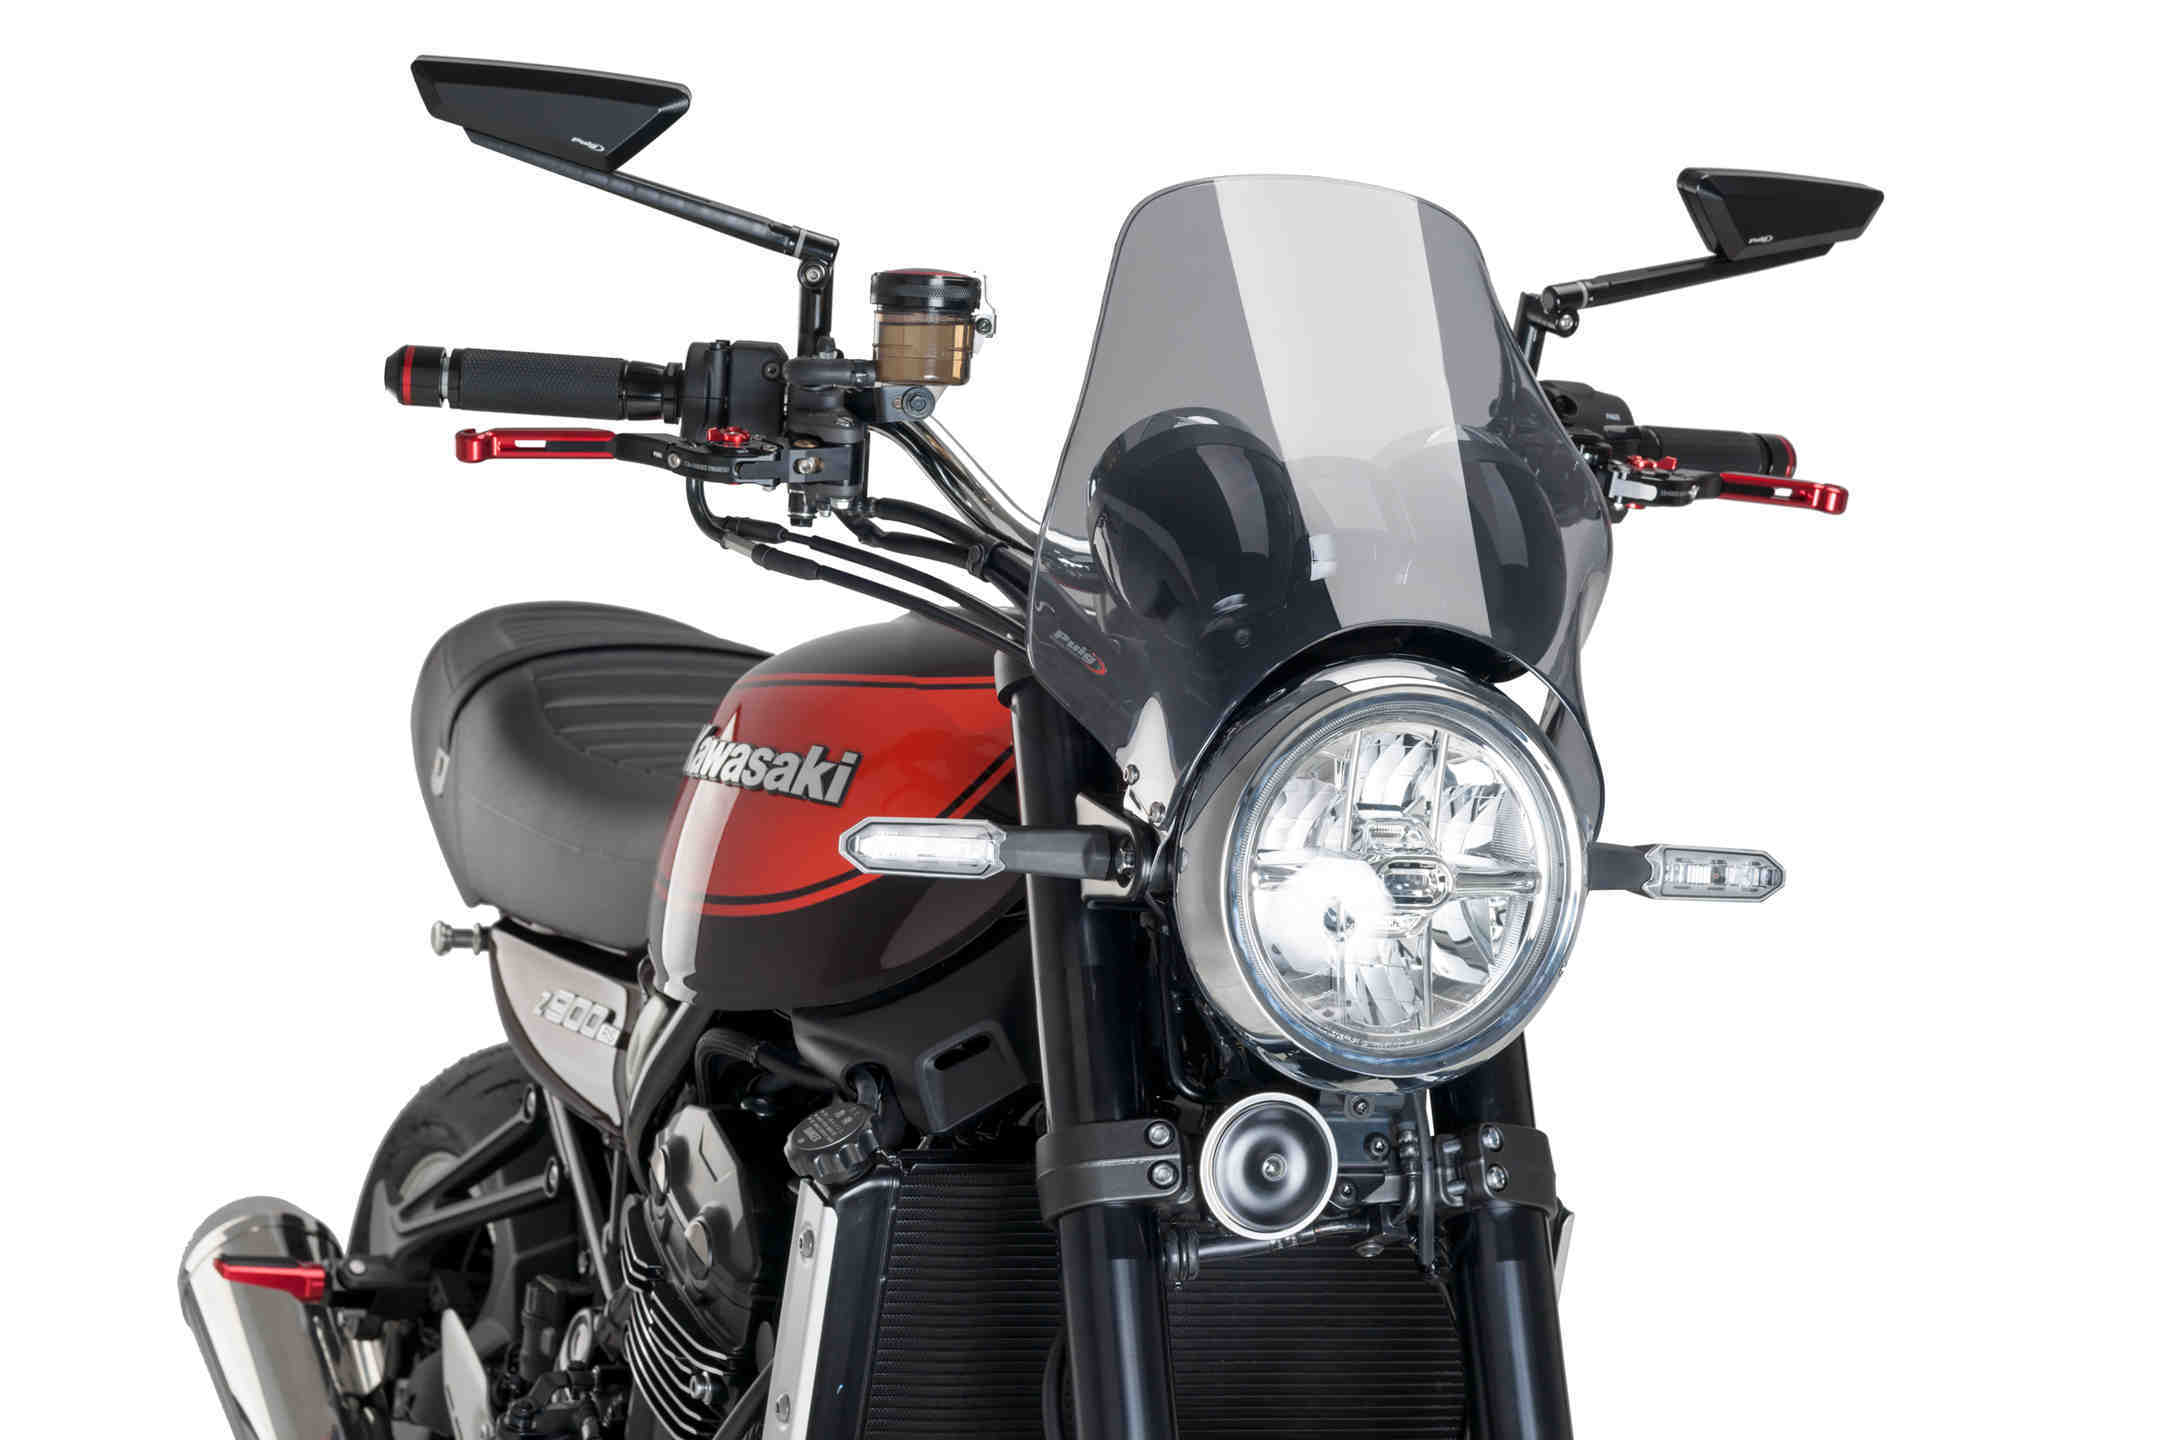 Pare,brise Puig Naked pour Kawasaki Z900 RS 2018 Z900 RS 65578 Sport  Classic out_of_stock